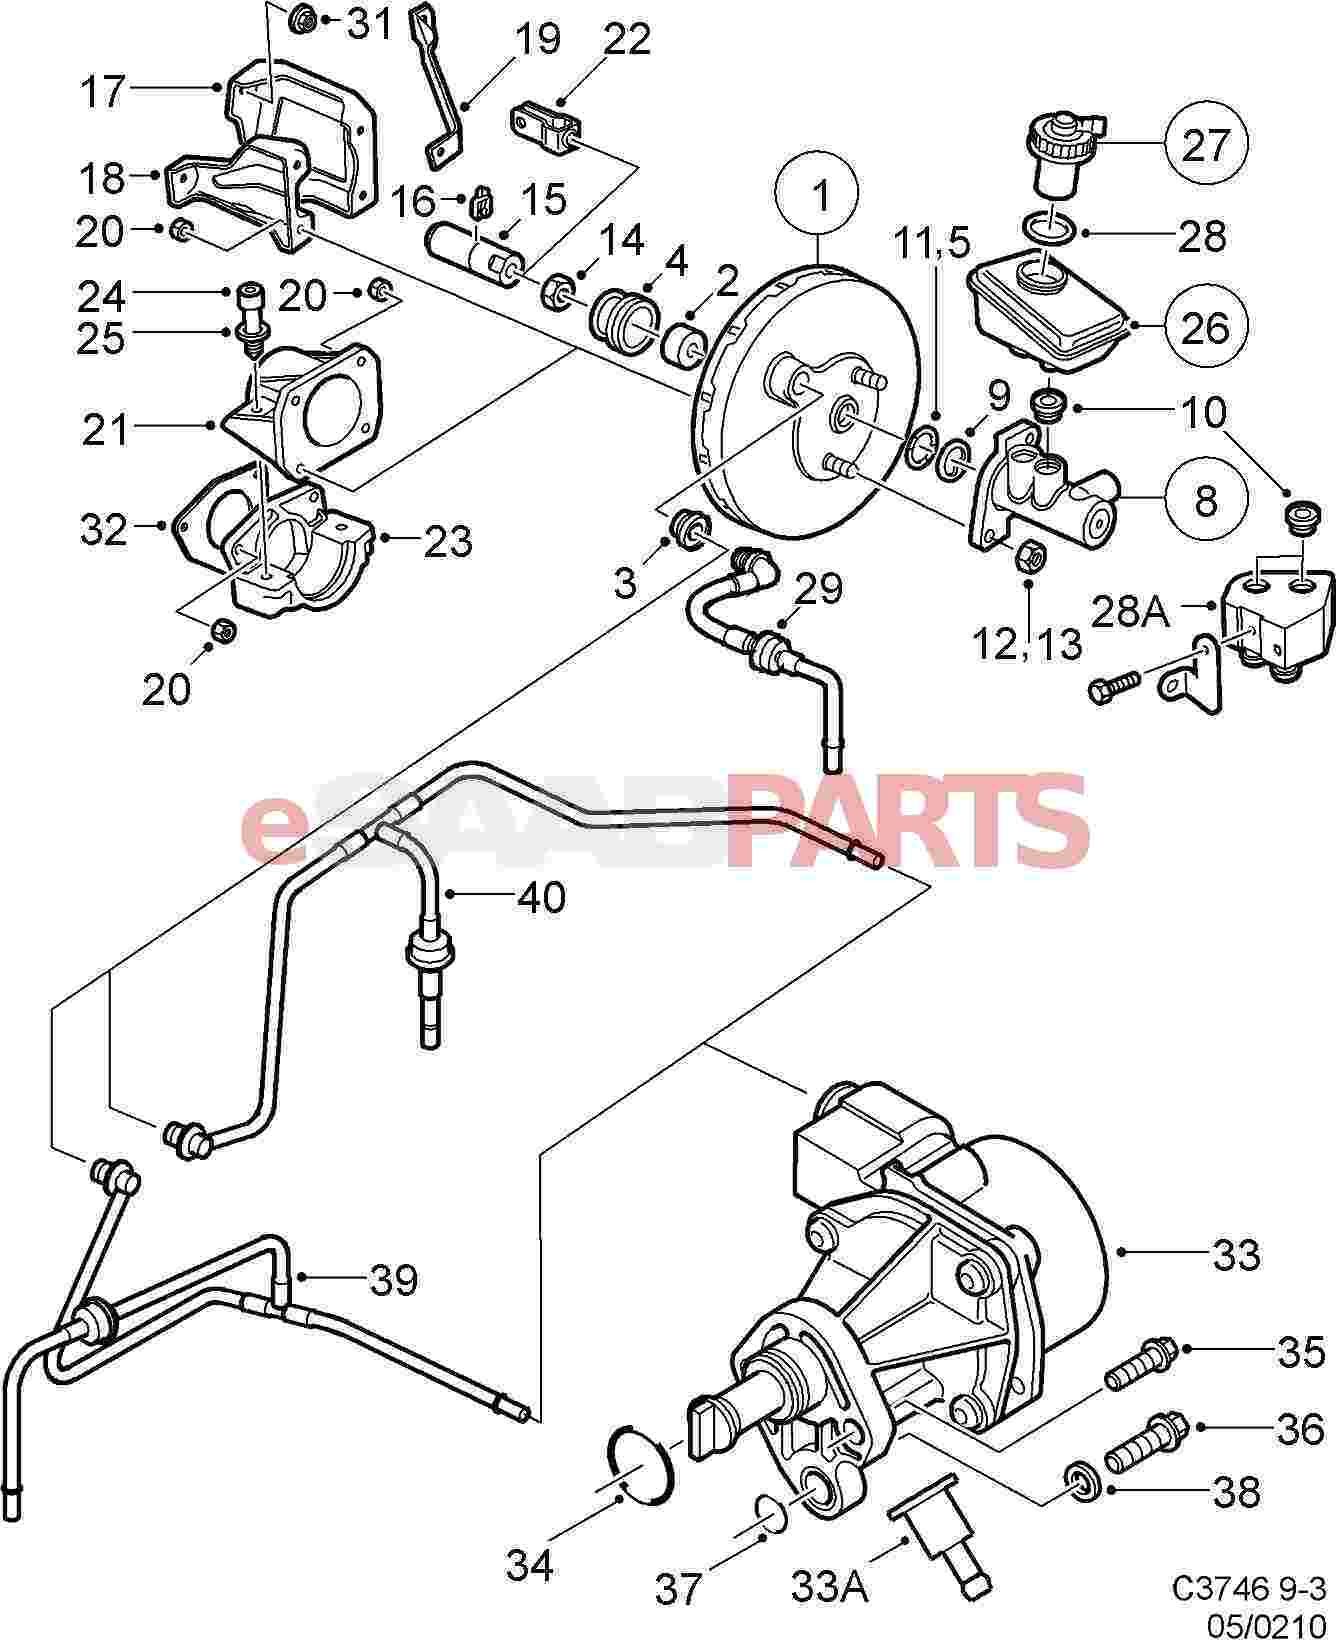 hight resolution of vacuum diagram 2004 saab trusted wiring diagram u2022 rh soulmatestyle co saab 9 5 v6 engine